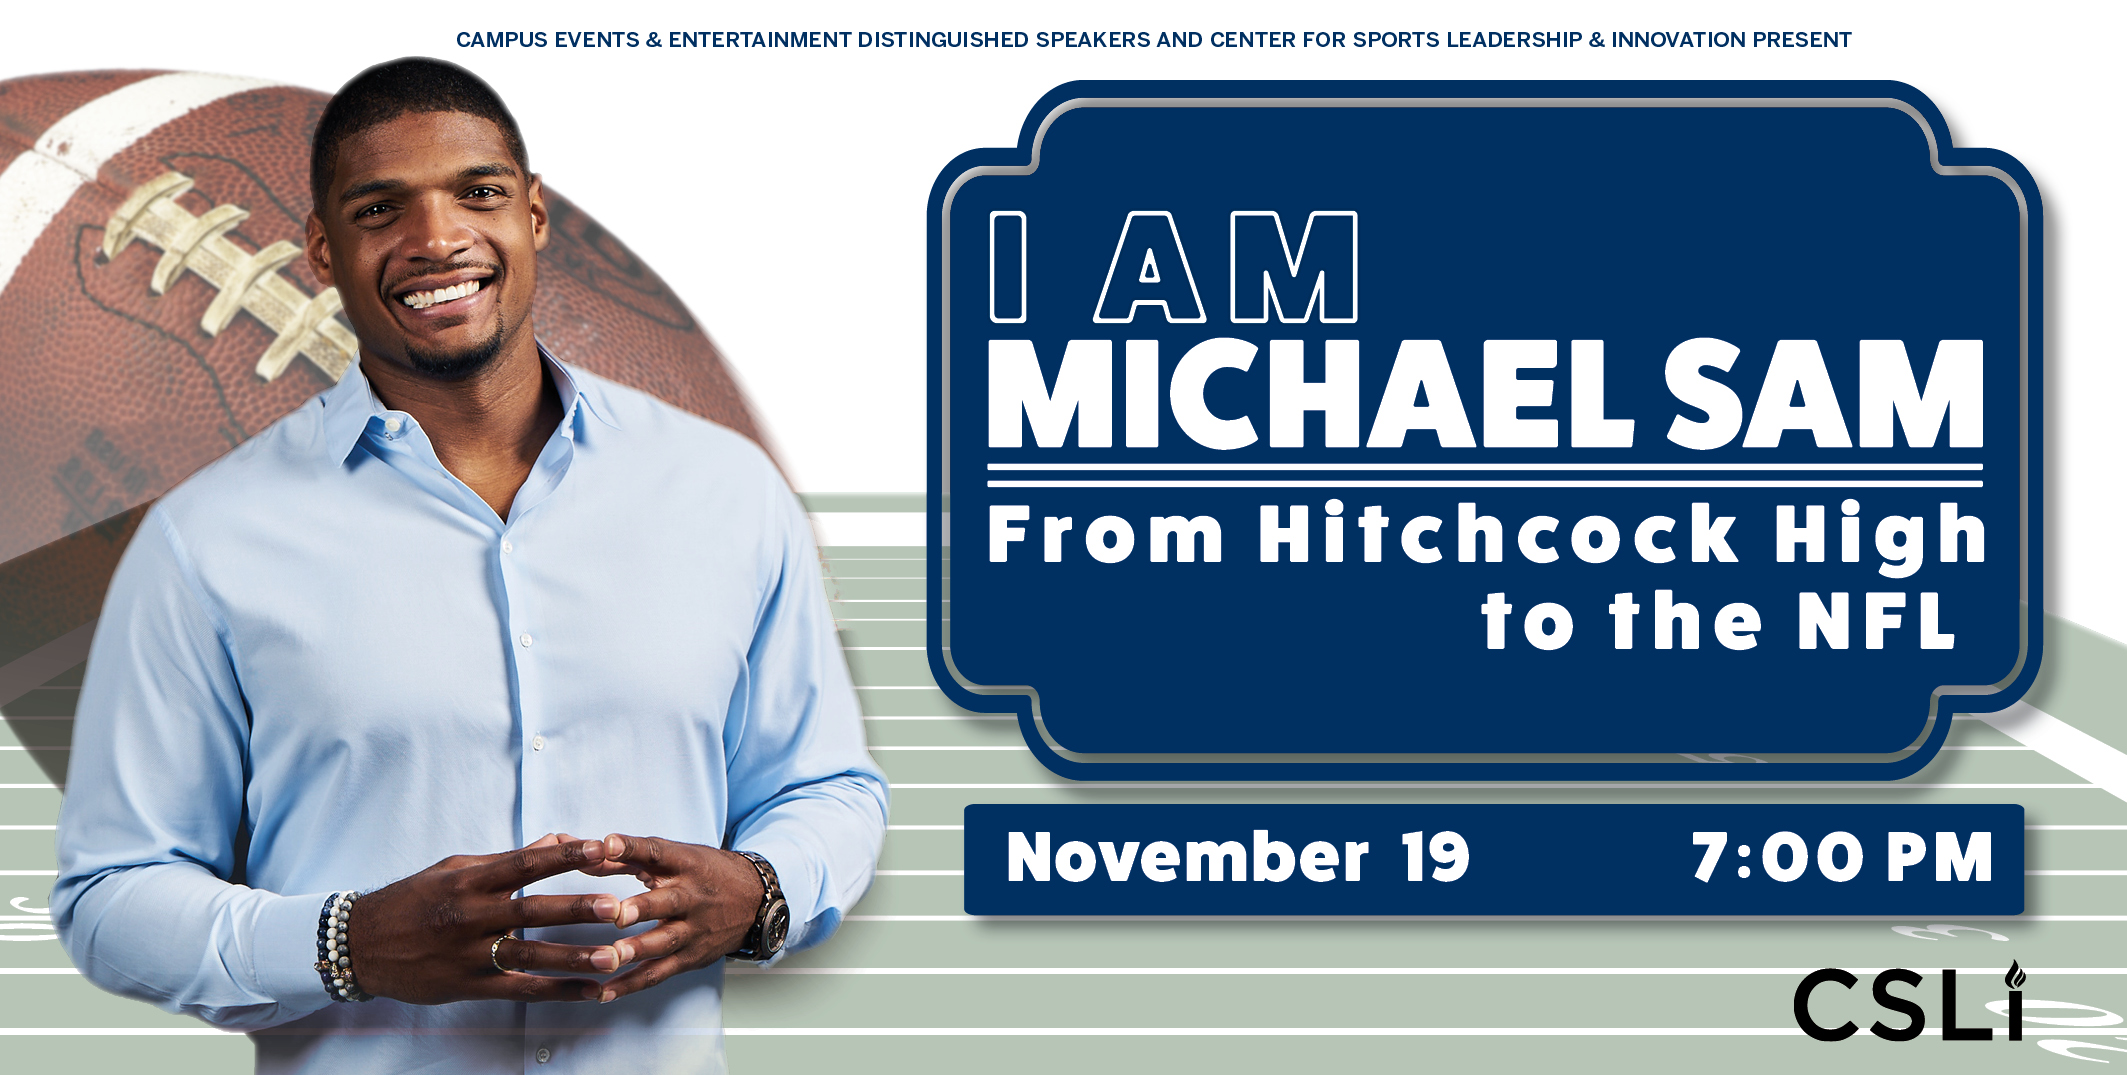 Michael Sam will be at UT on Tuesday November 19, 2019 at 7 pm in the WCP Auditorium.